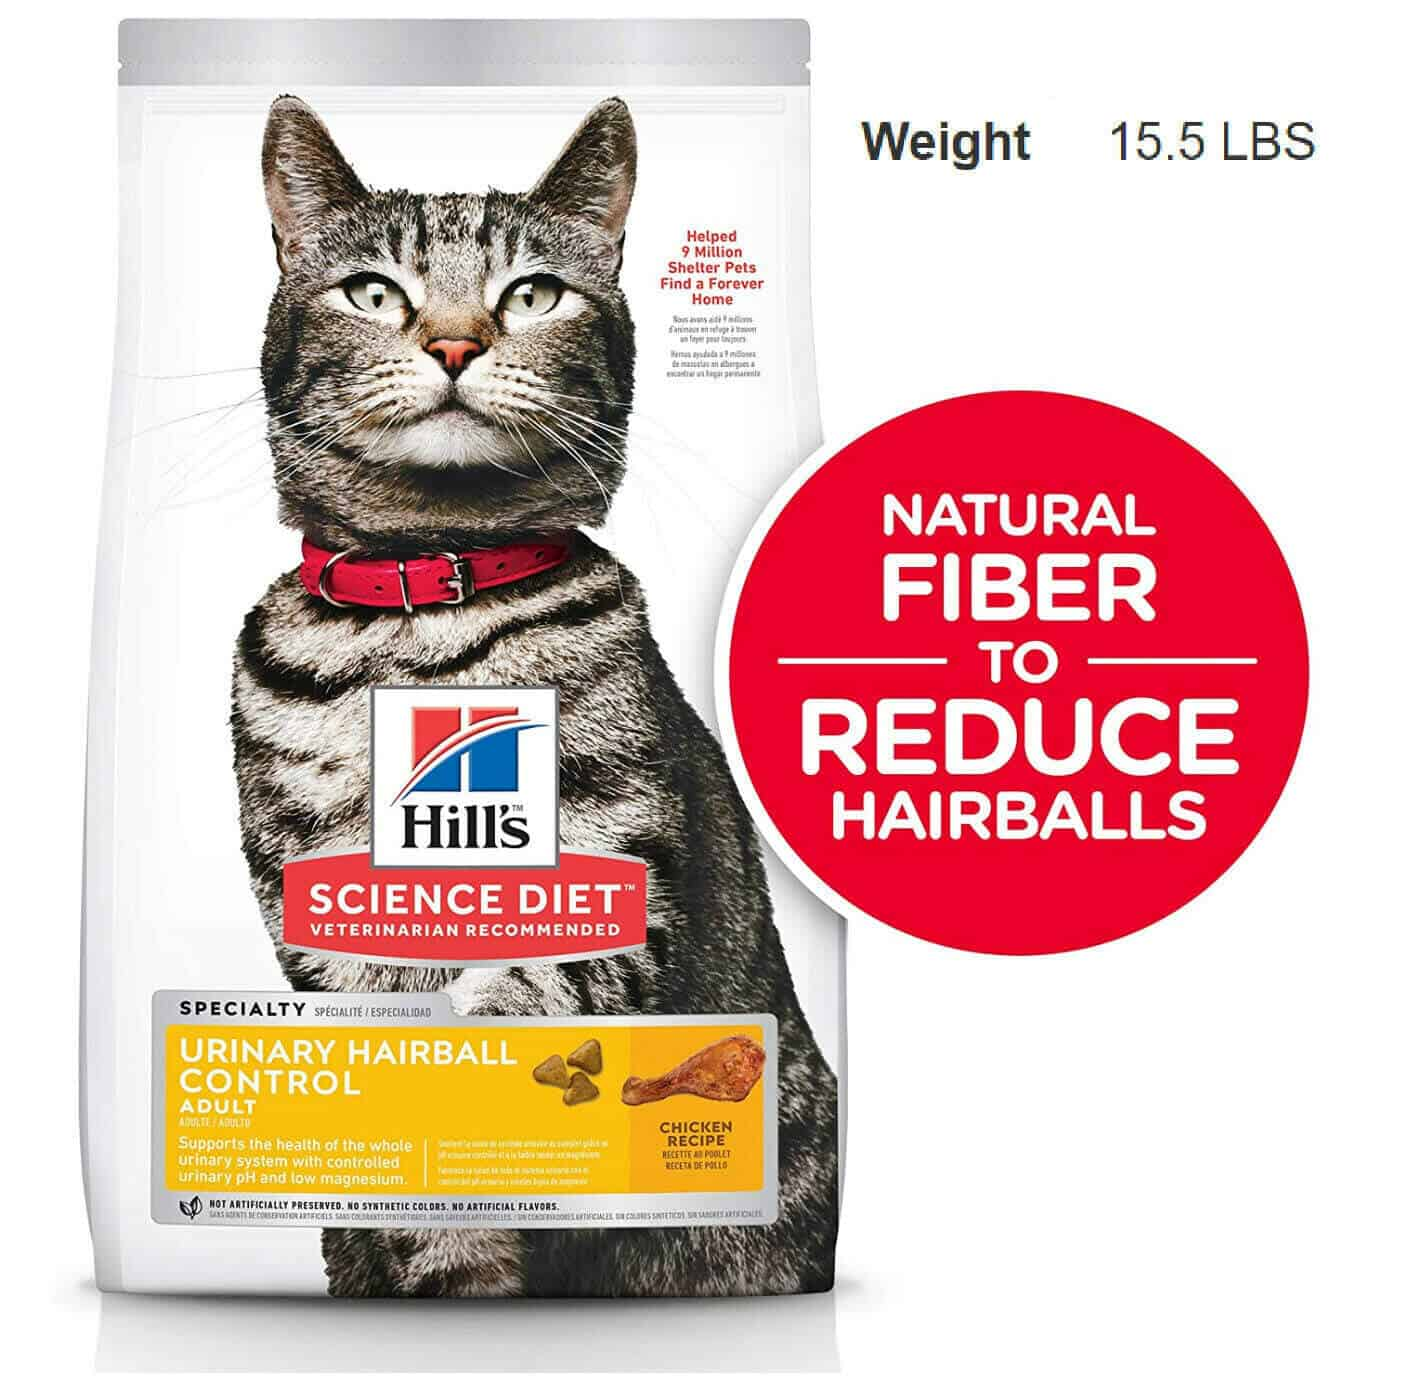 Low Magnesium Cat Food: Reviews And Buying Guide